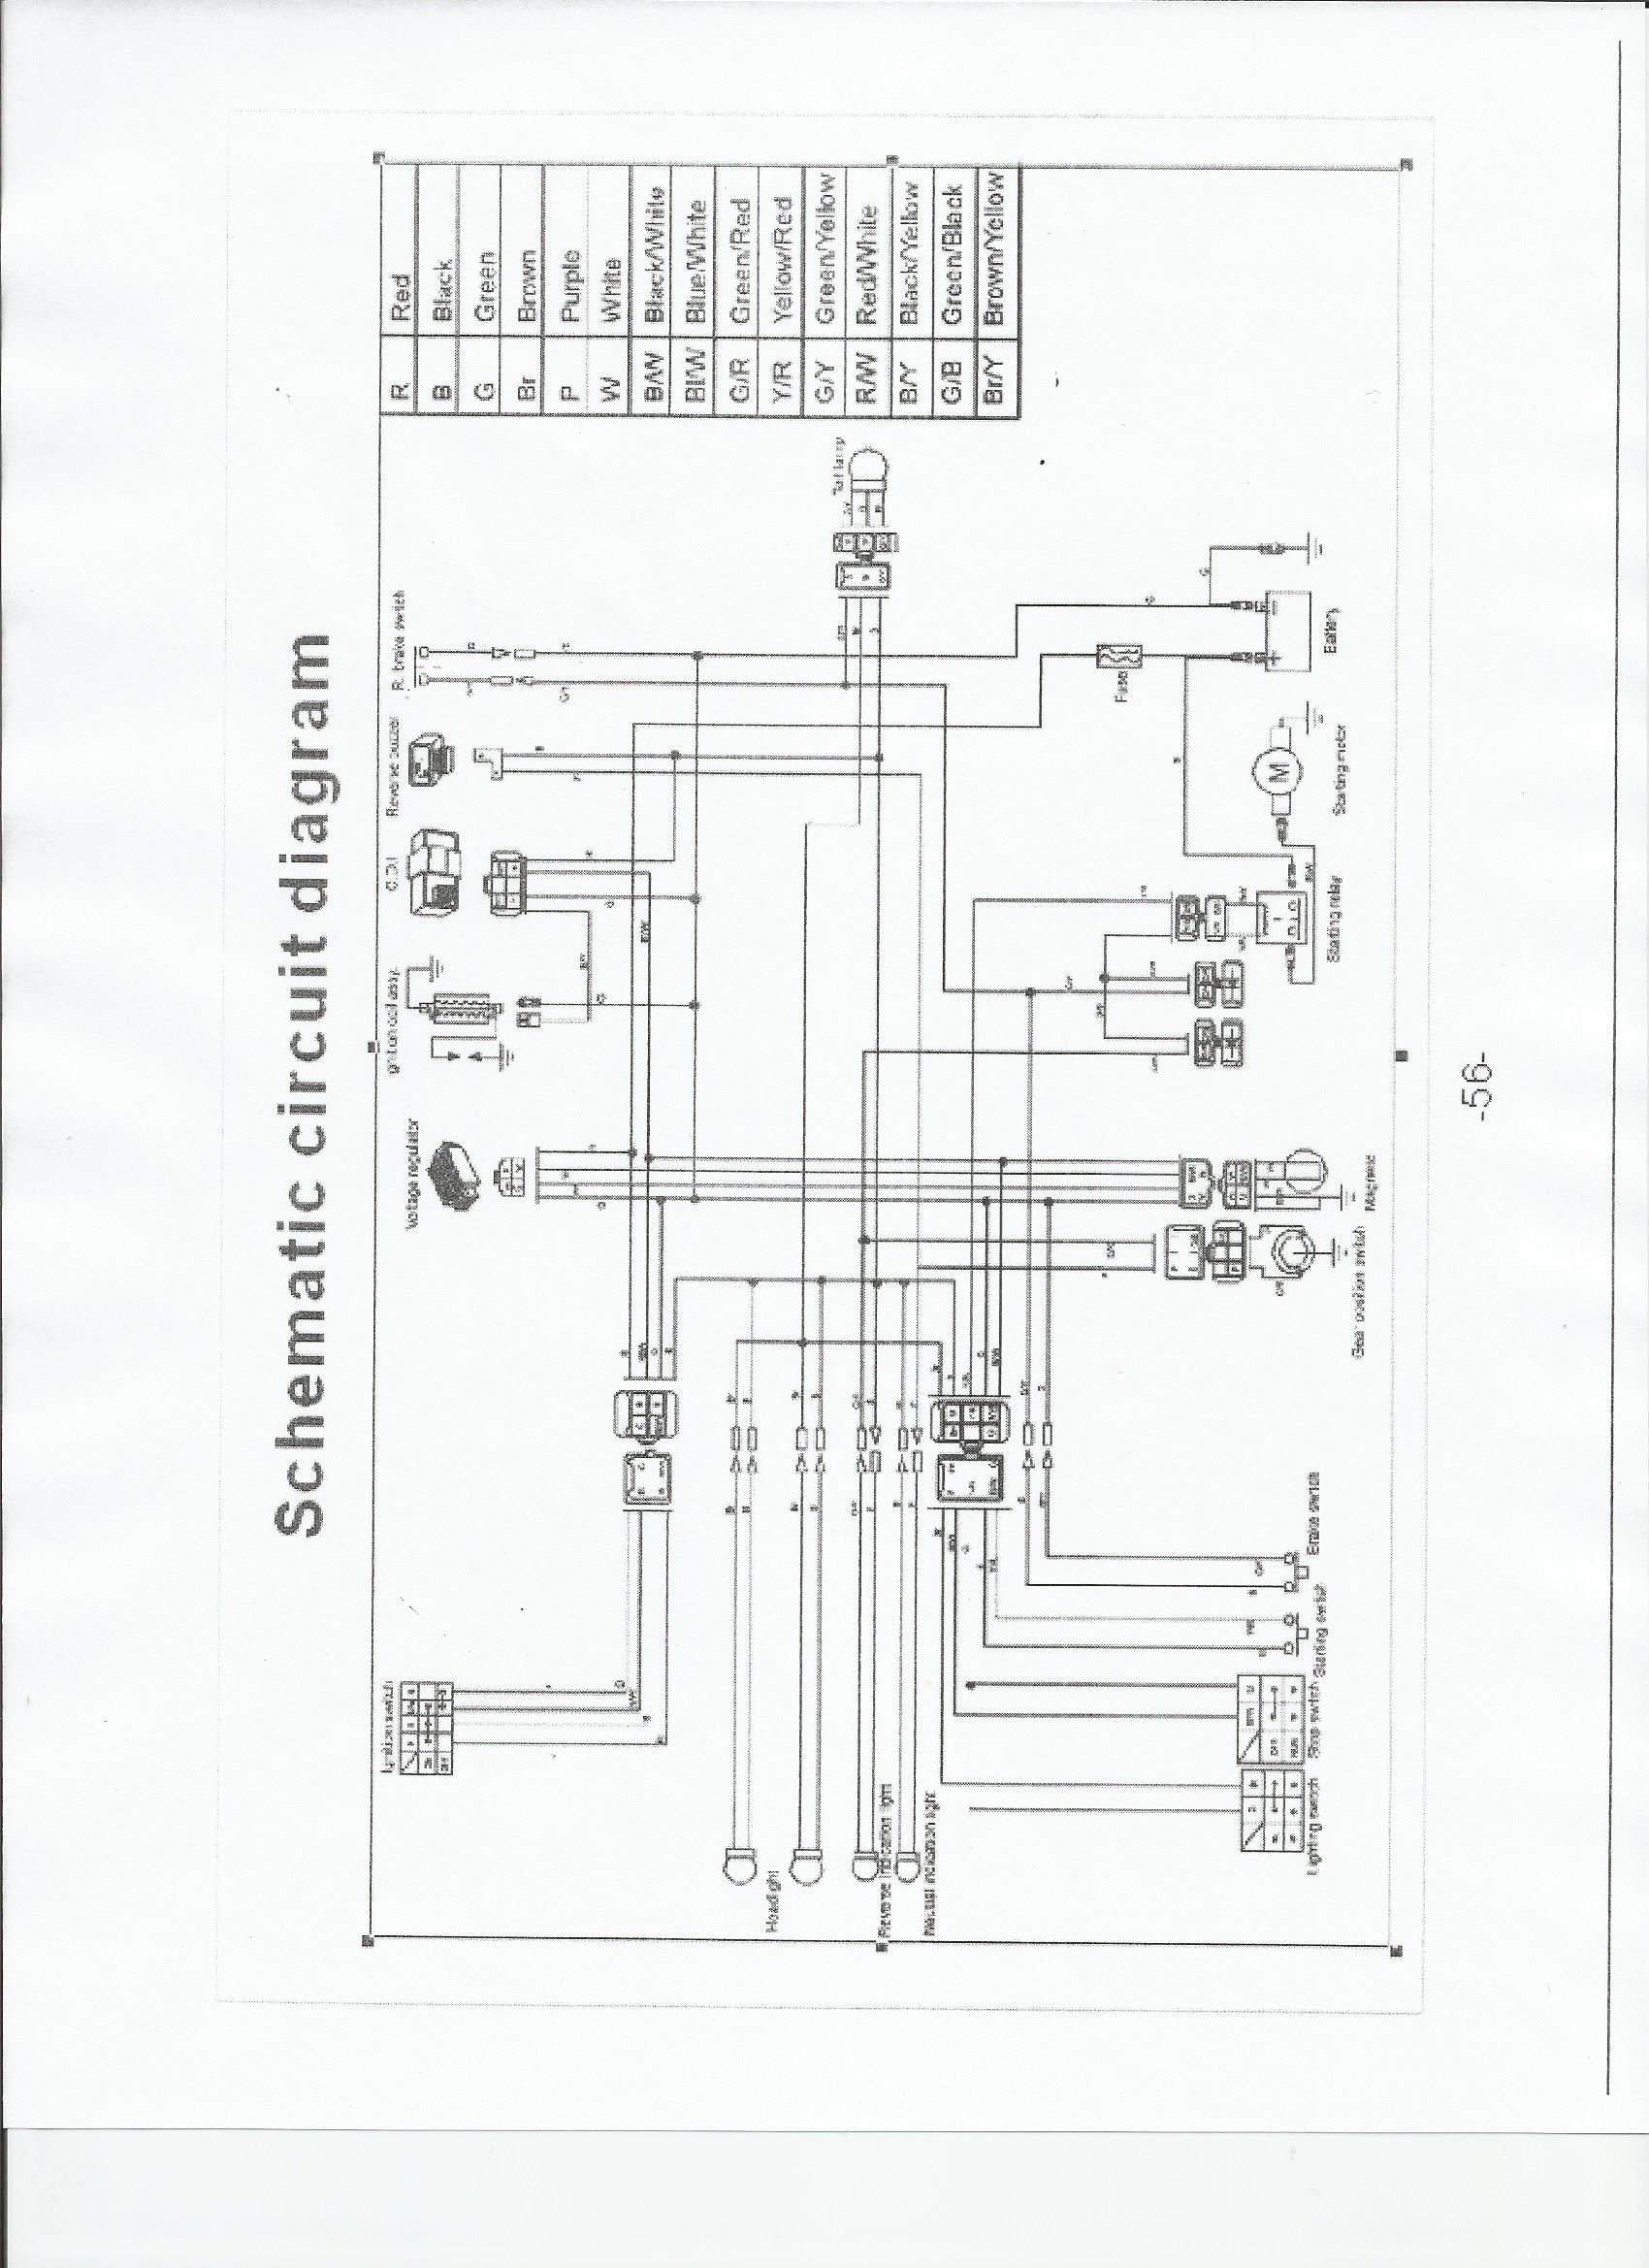 tao tao wiring schematic taotao mini and youth atv wiring schematic familygokarts support chinese 110 atv wiring diagram at gsmportal.co